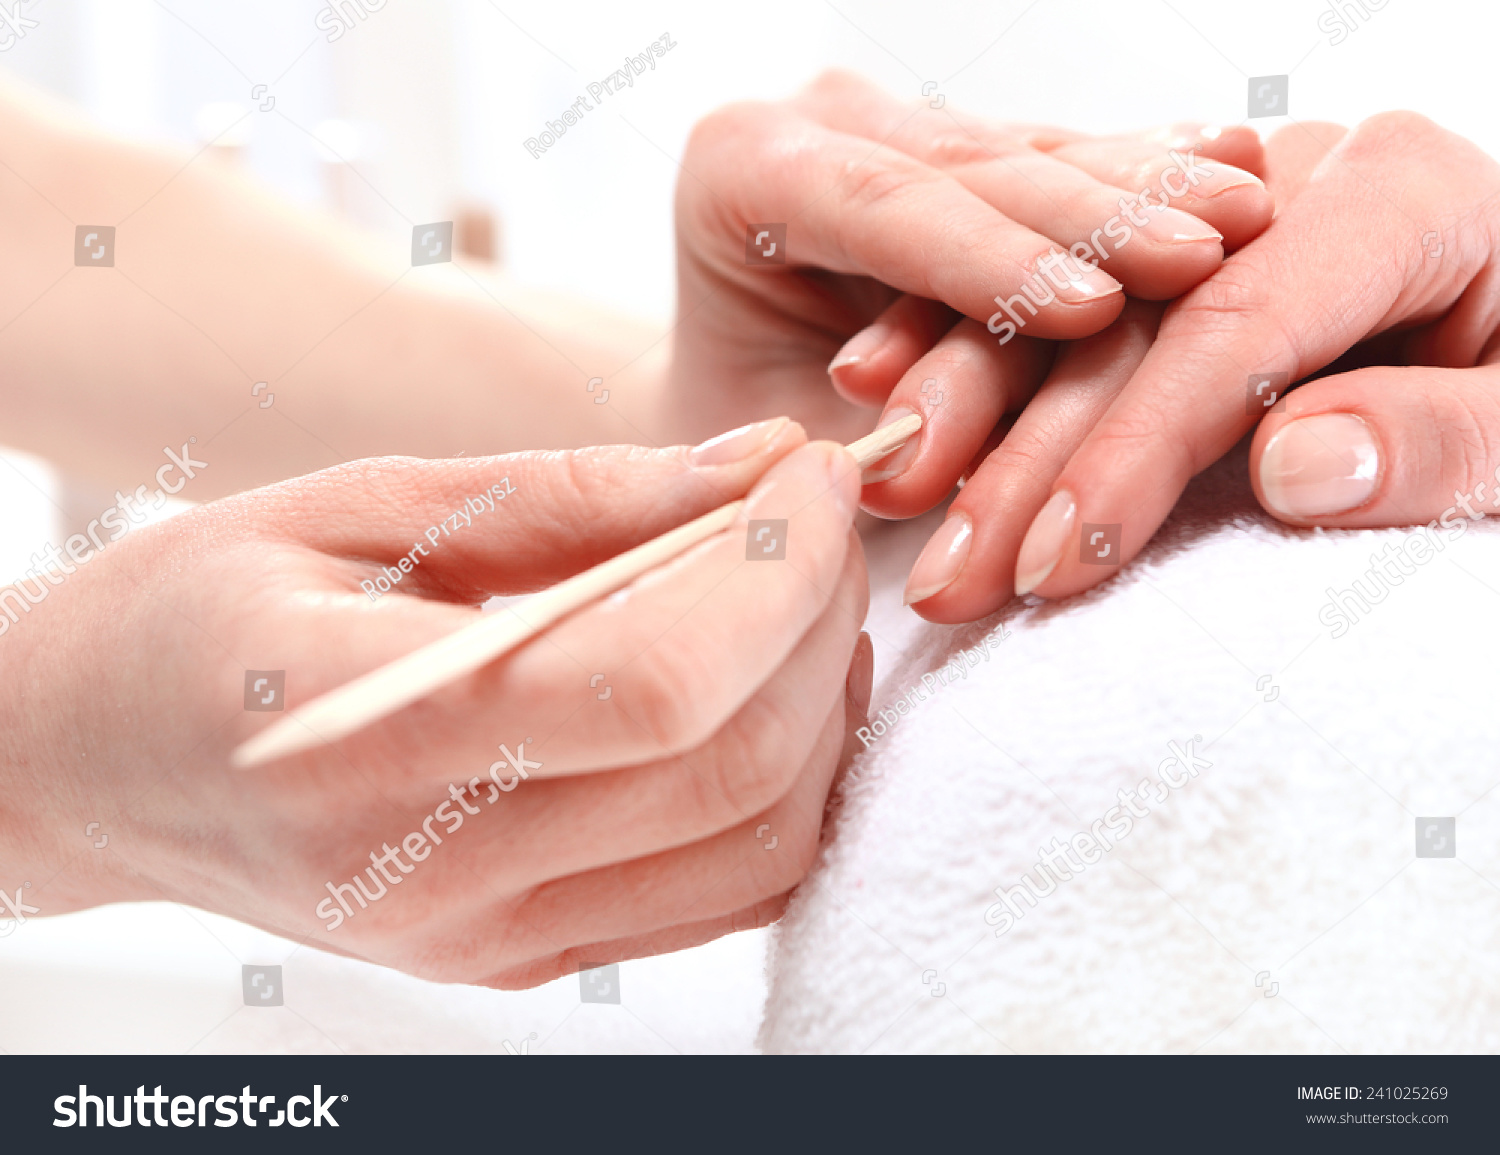 Beauty salon manicure treatment hand and nail care the for A trial beauty treatment salon